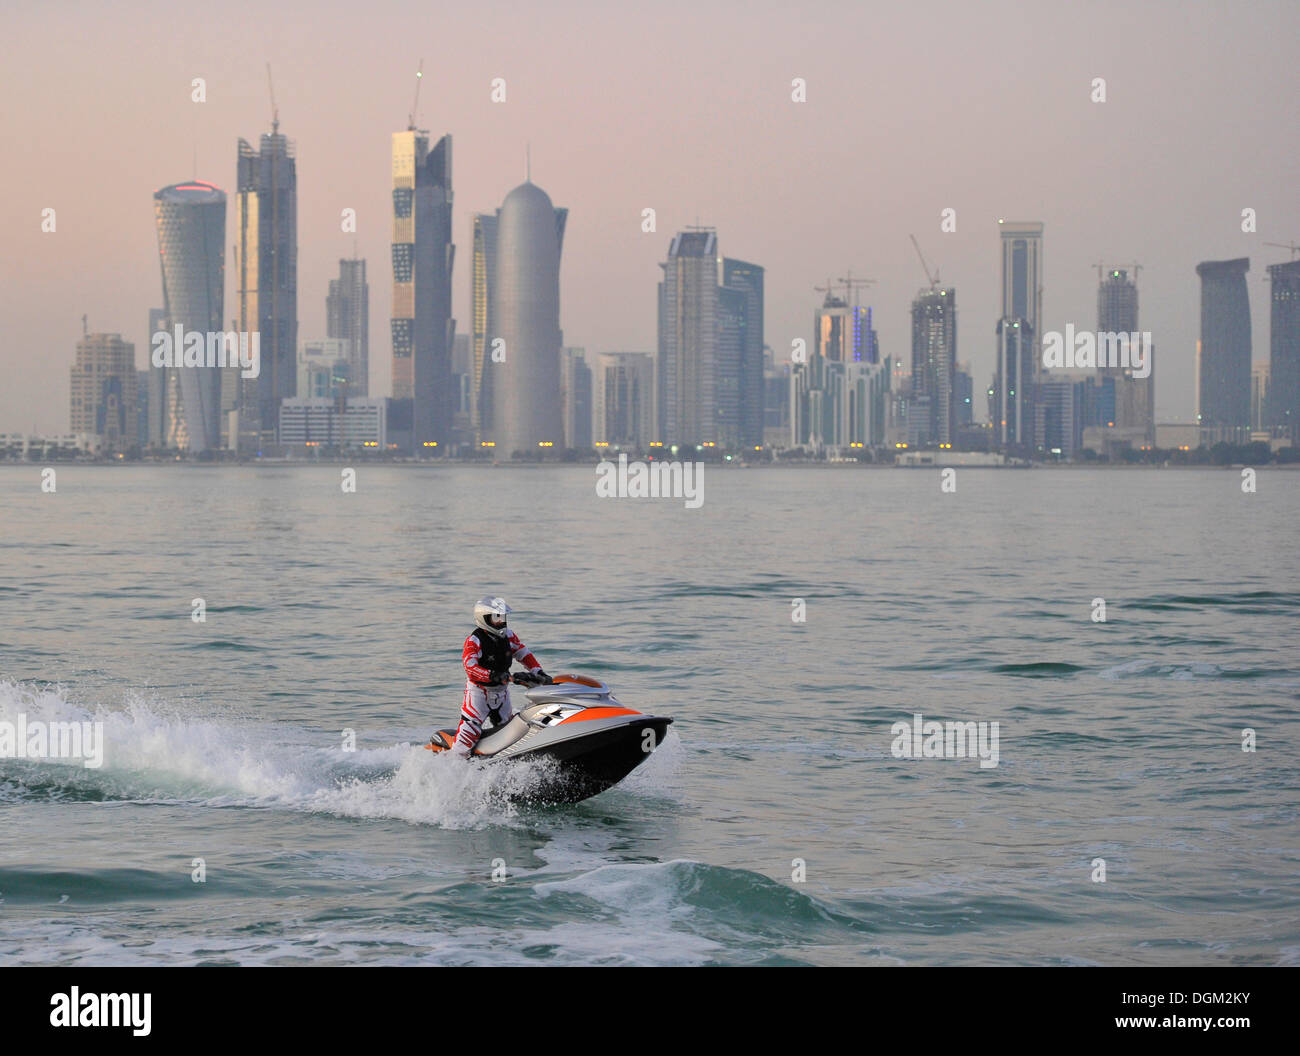 Jet-skiing, jetboat, personal watercraft in front of the skyline of Doha, Qatar, Persian Gulf, Middle East, Asia - Stock Image